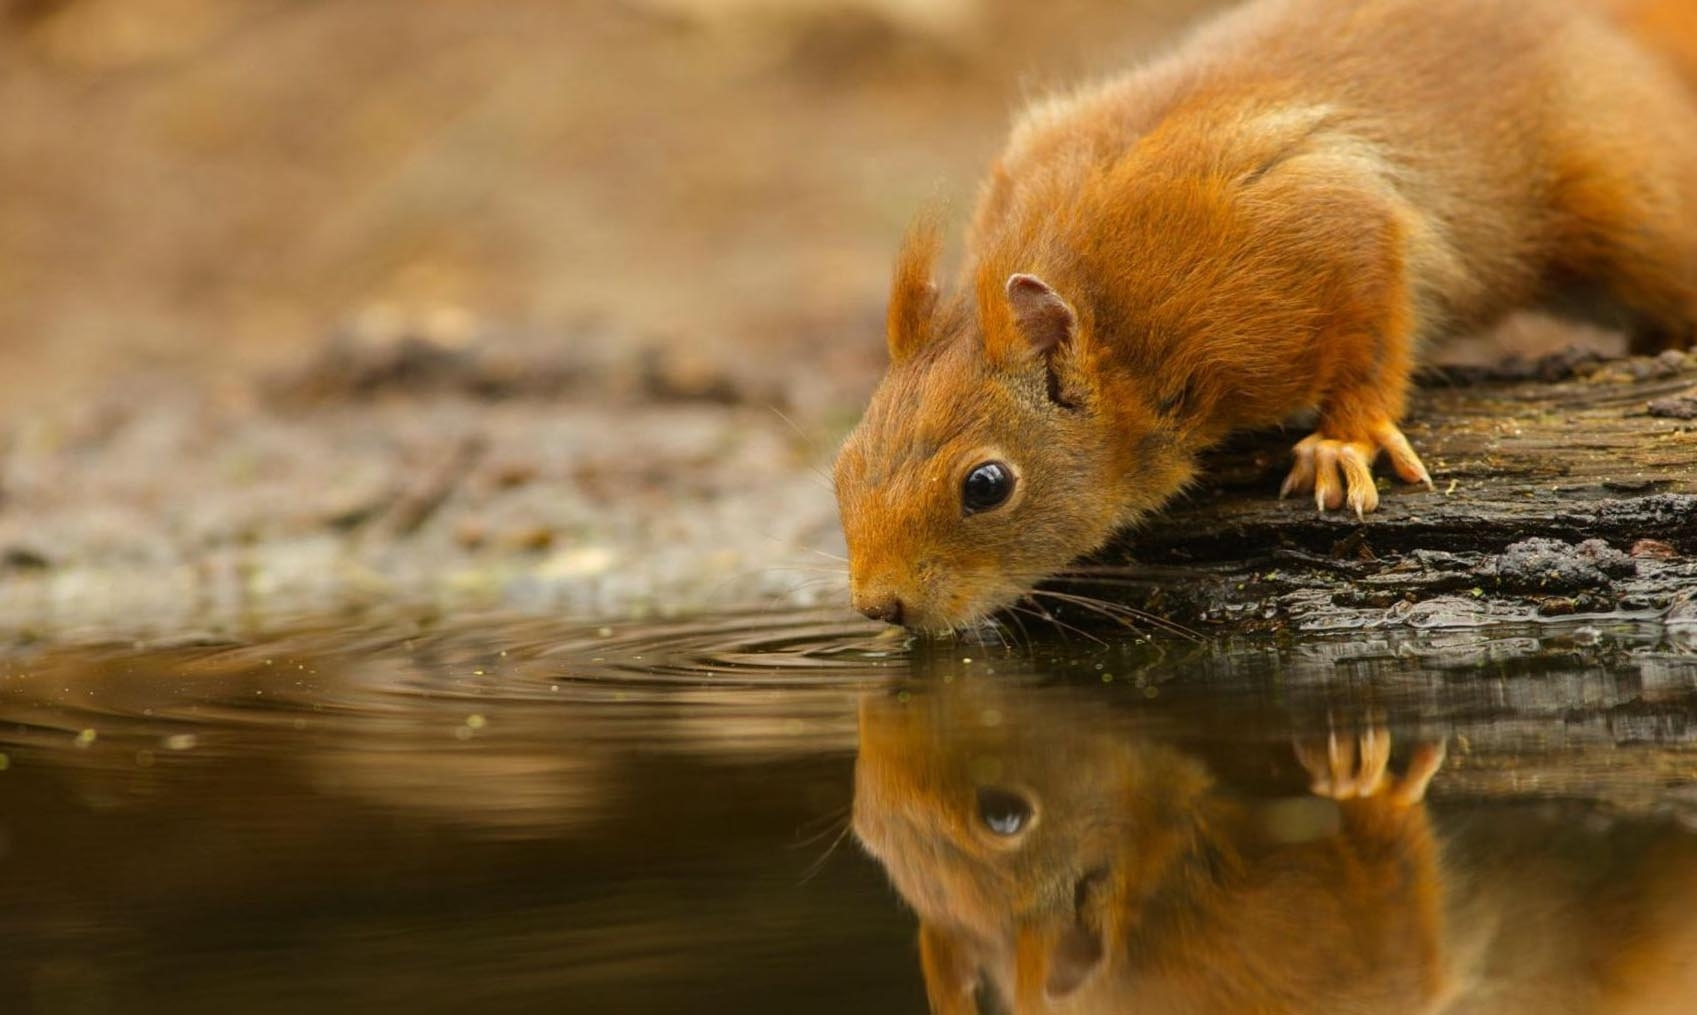 cute wild animal wallpaper | hd desktop background